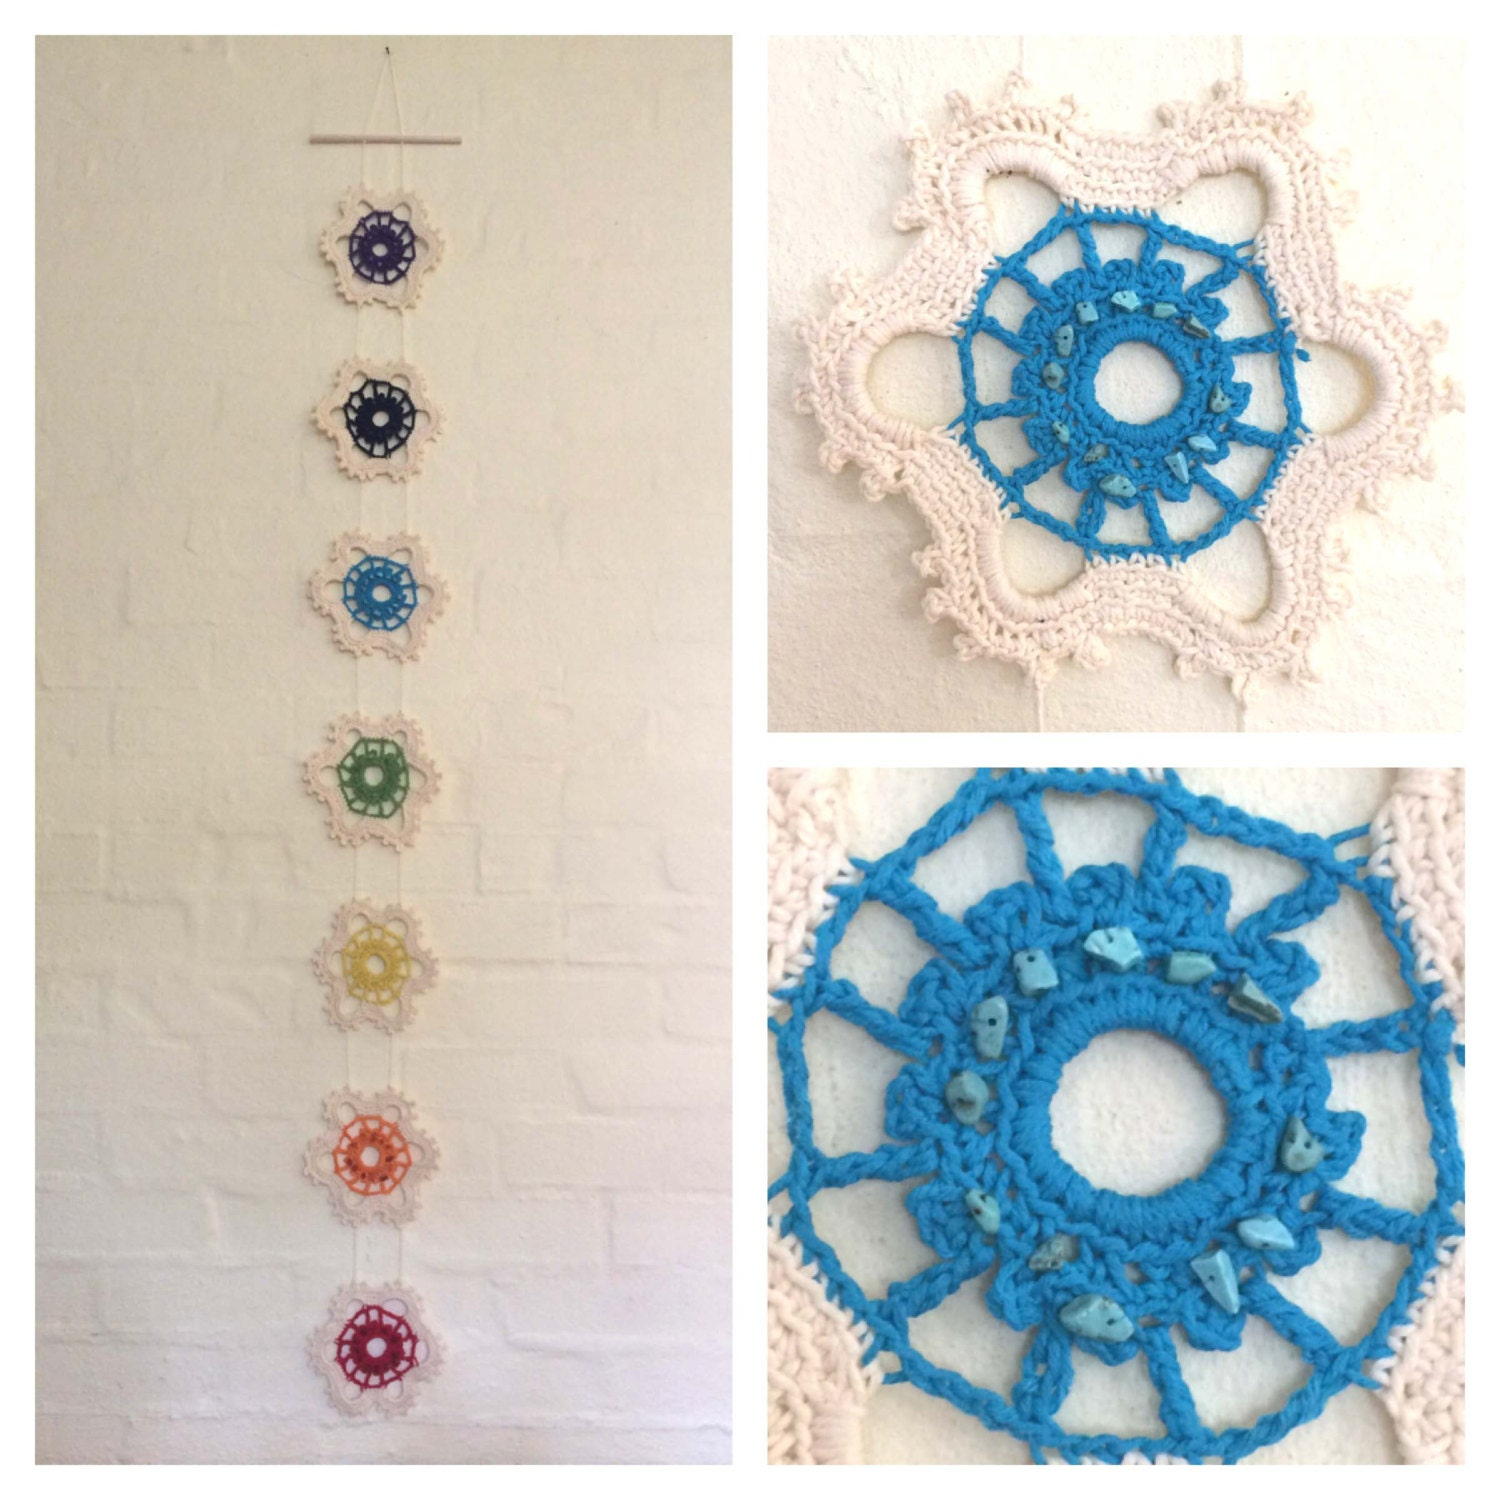 Crochet Wall Hanging : chakra wall hanging crochet crystals chakra by HeartAndHands2